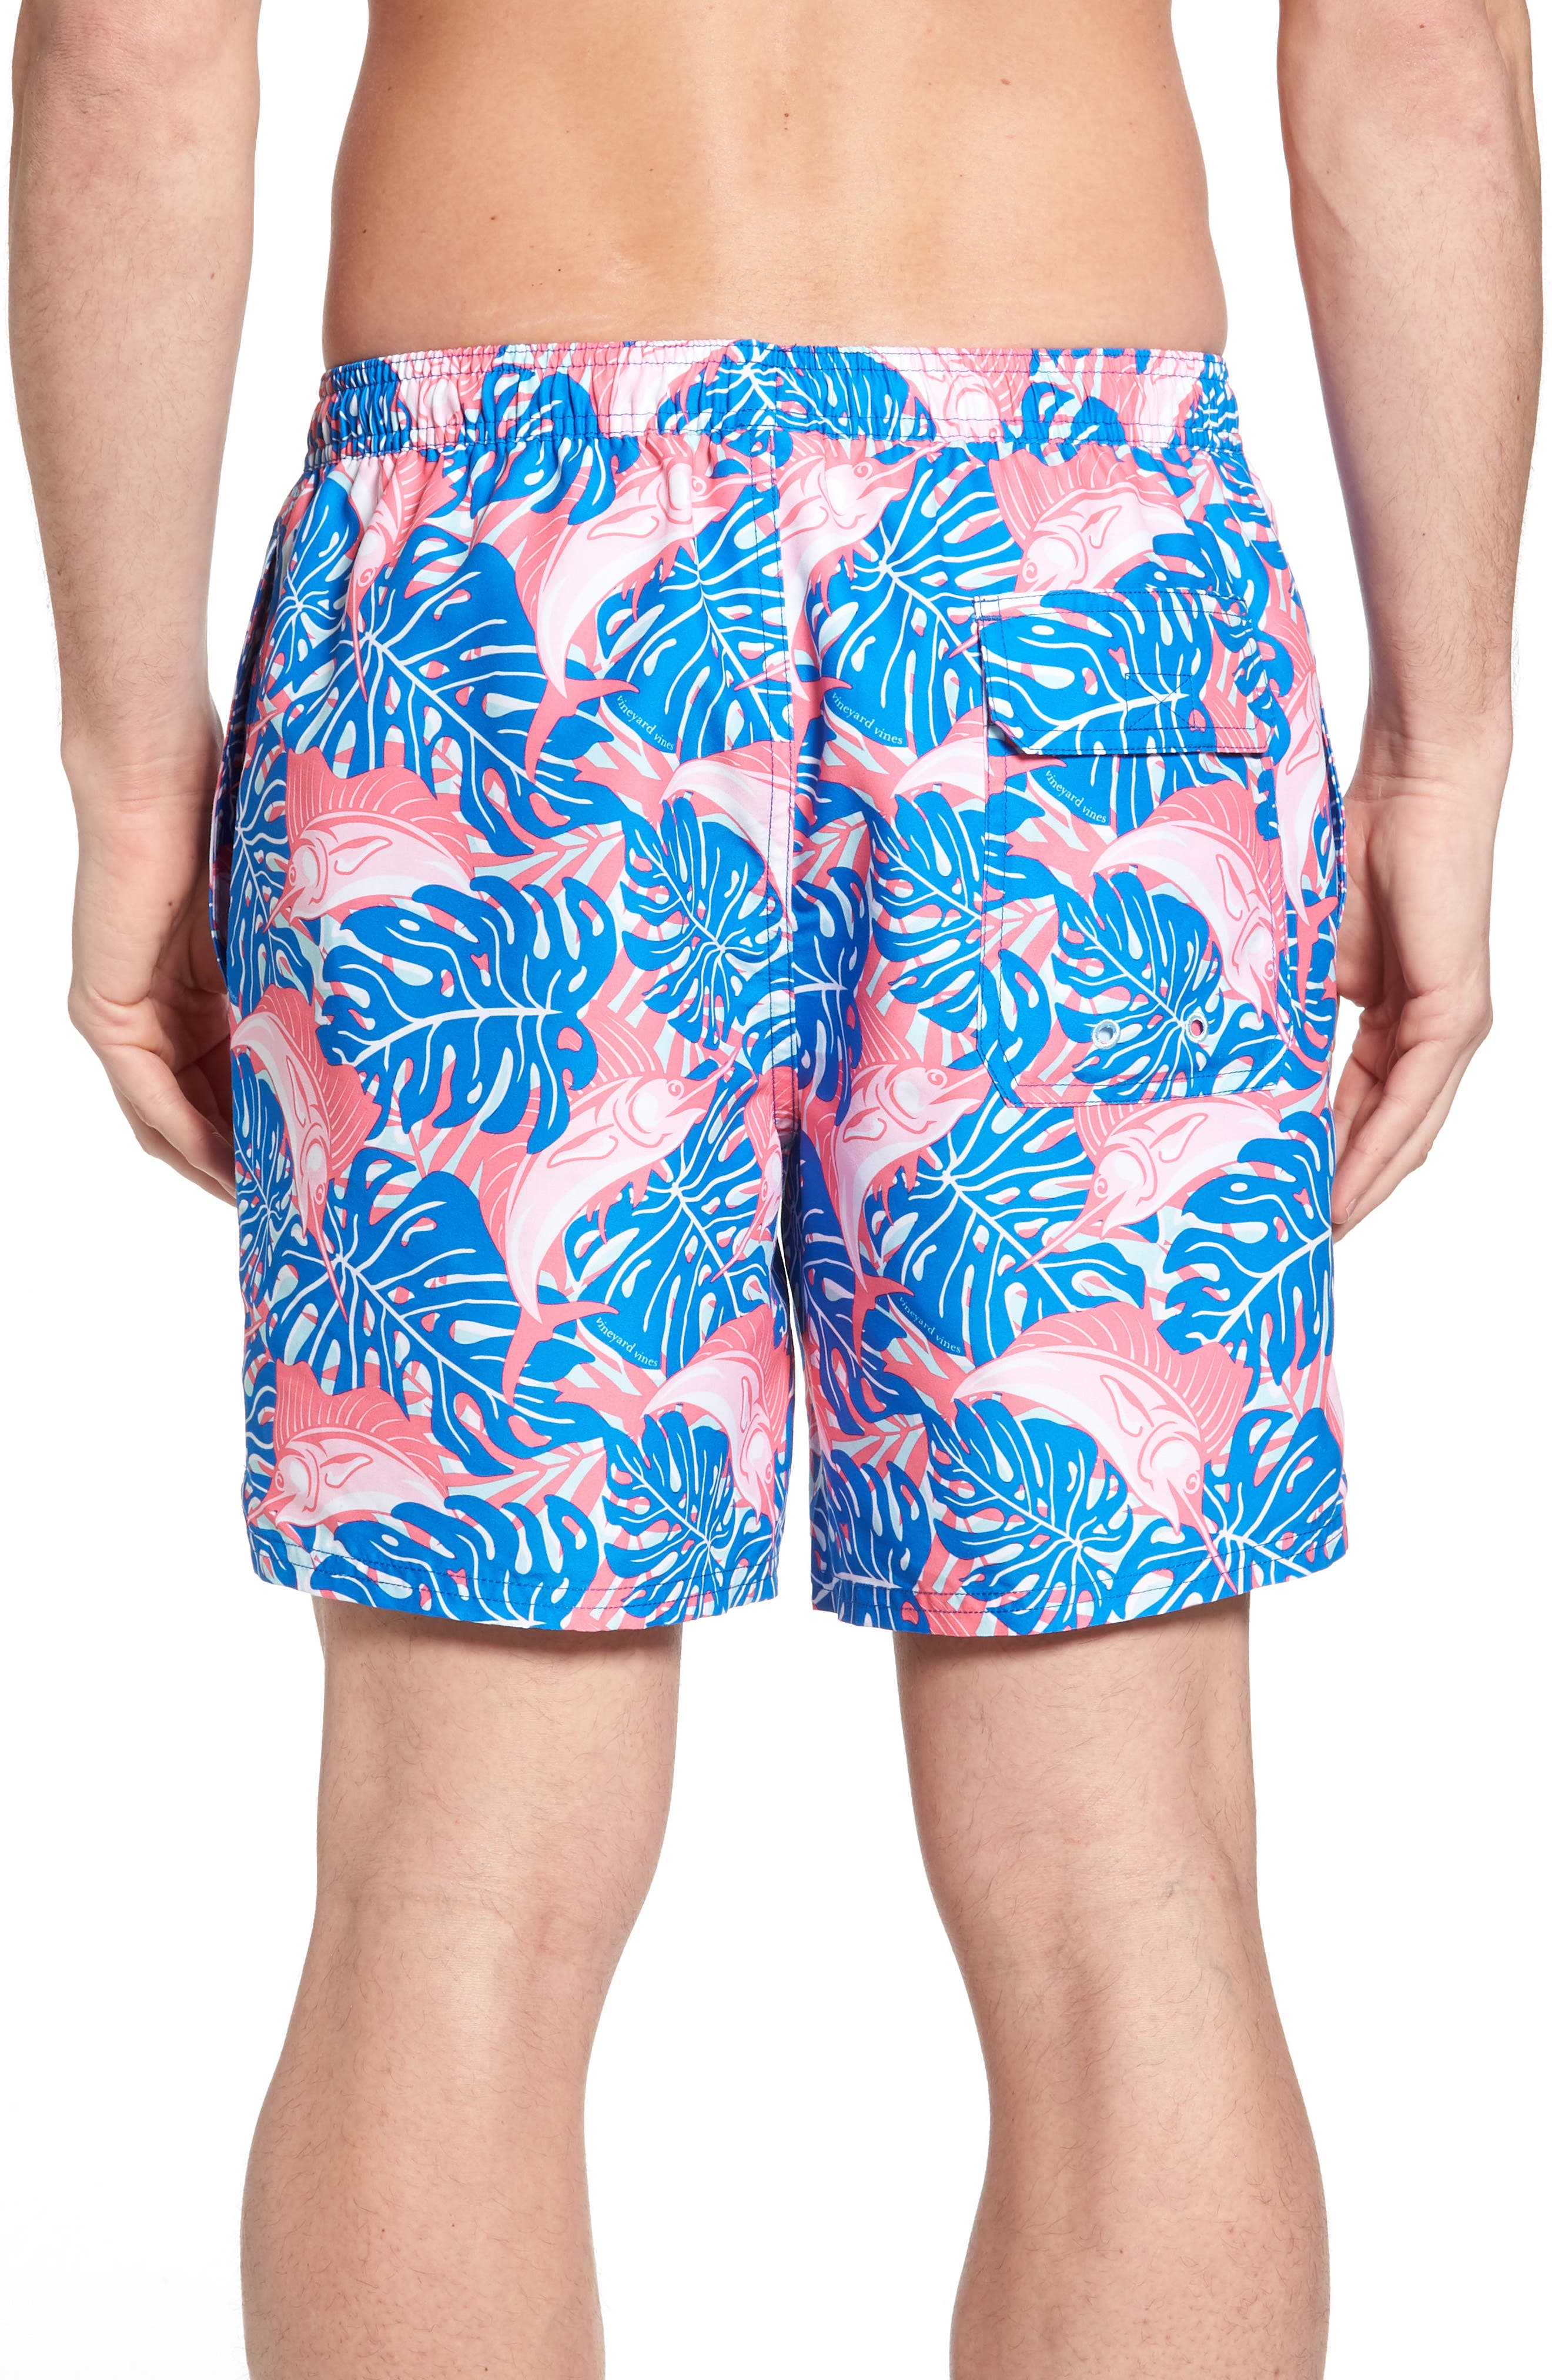 Sailfish & Leaves Chappy Swim Trunks,                             Alternate thumbnail 2, color,                             Azure Blue